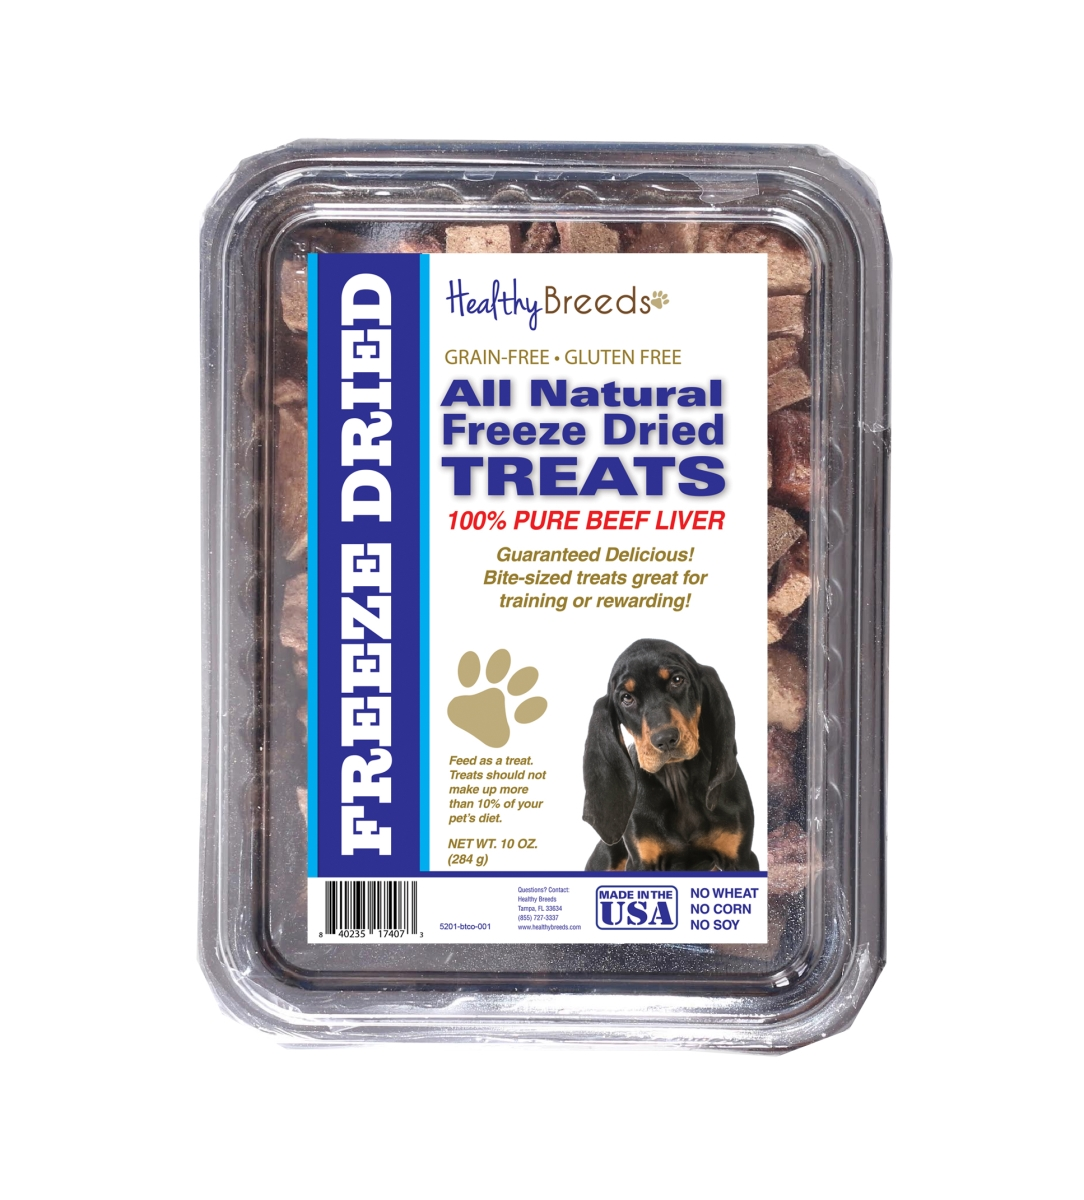 Healthy Breeds 840235174073 10 oz Black & Tan Coonhound All Natural Freeze Dried Treats Beef Liver